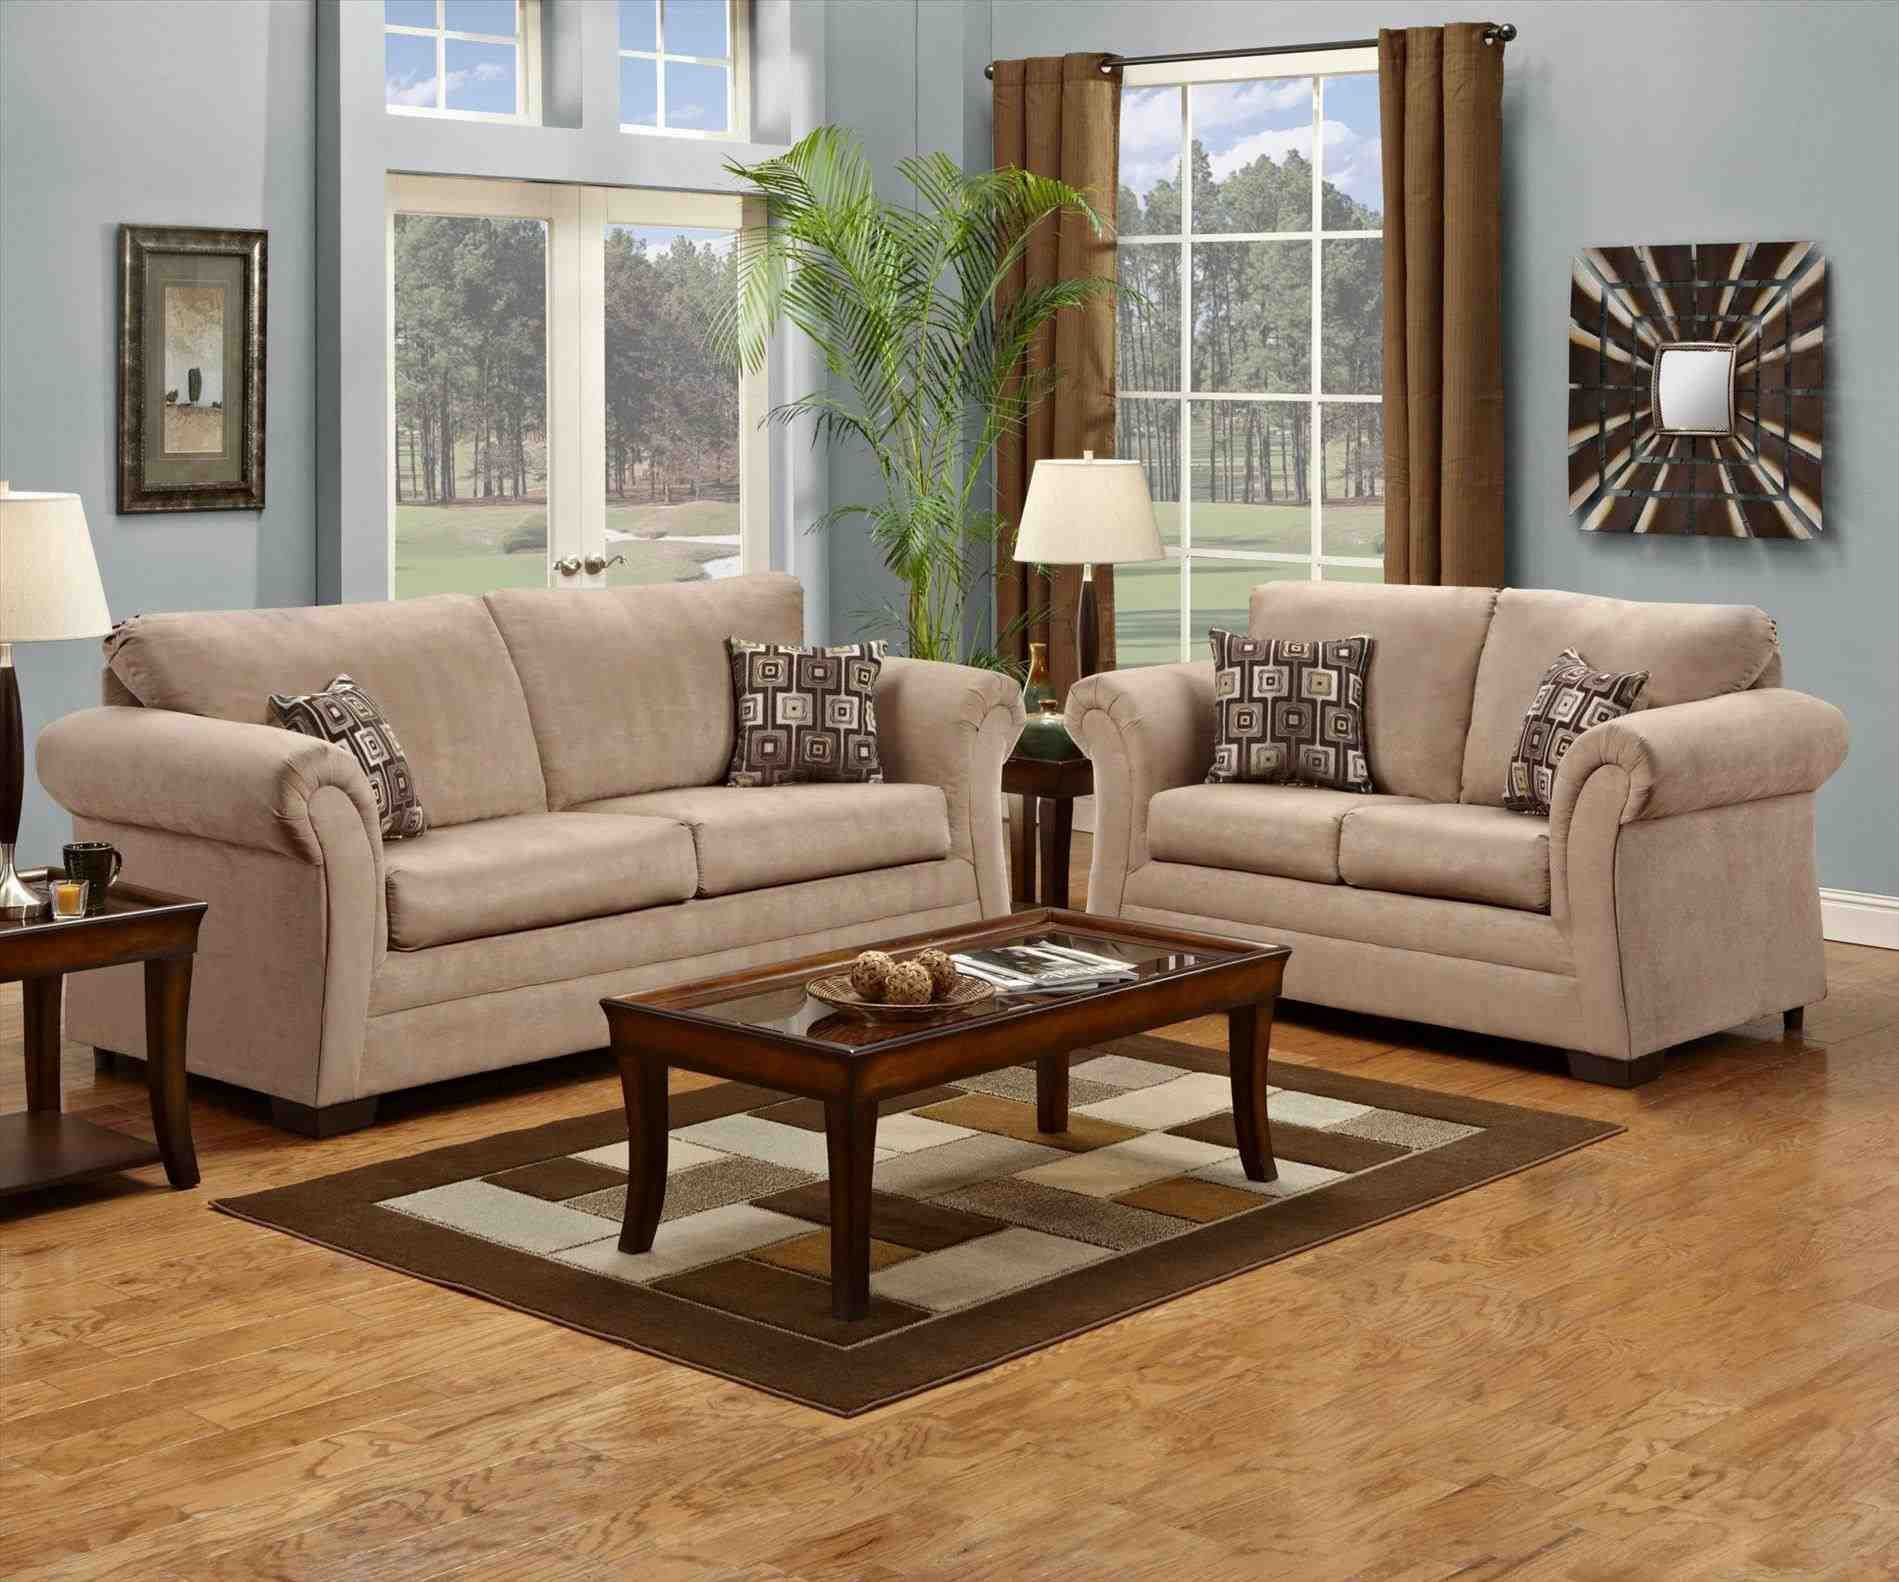 Cheap Sofa And Loveseat Sets Full Size Of Sofa Cheap Couch Sets